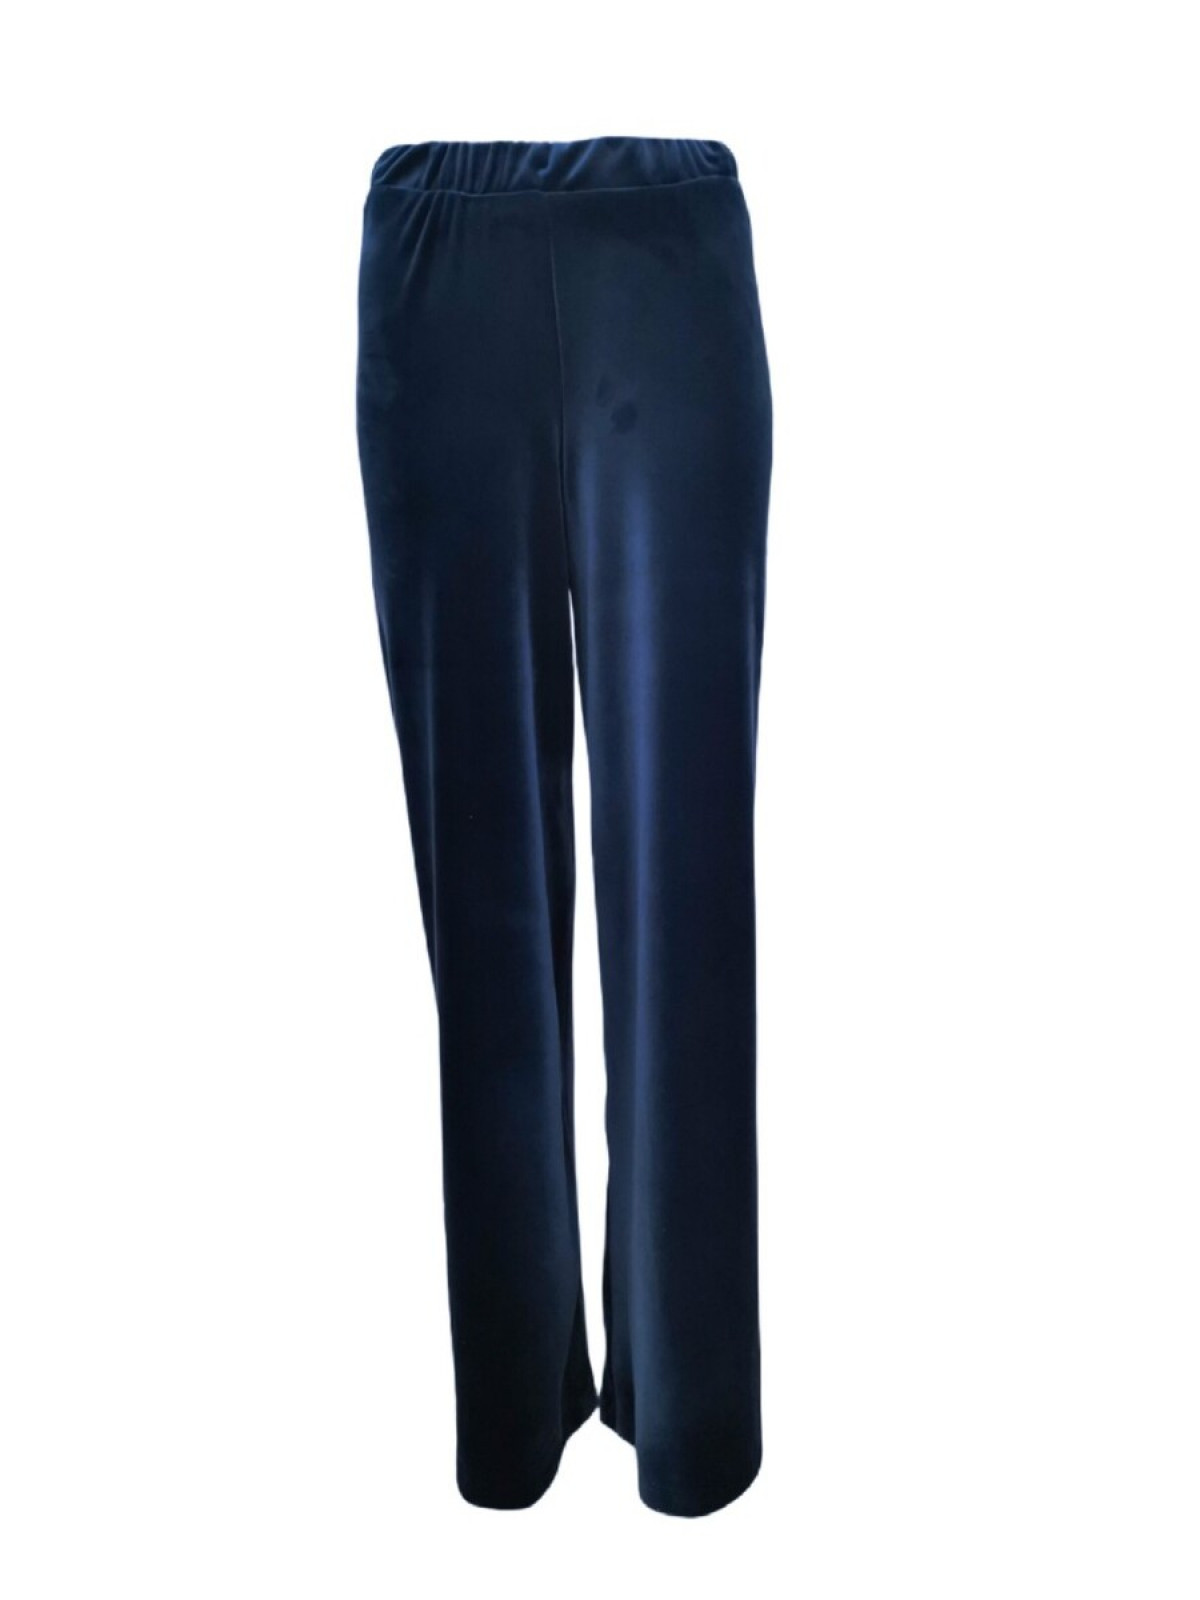 BLUE VELVET WIDE LEG TROUSERS